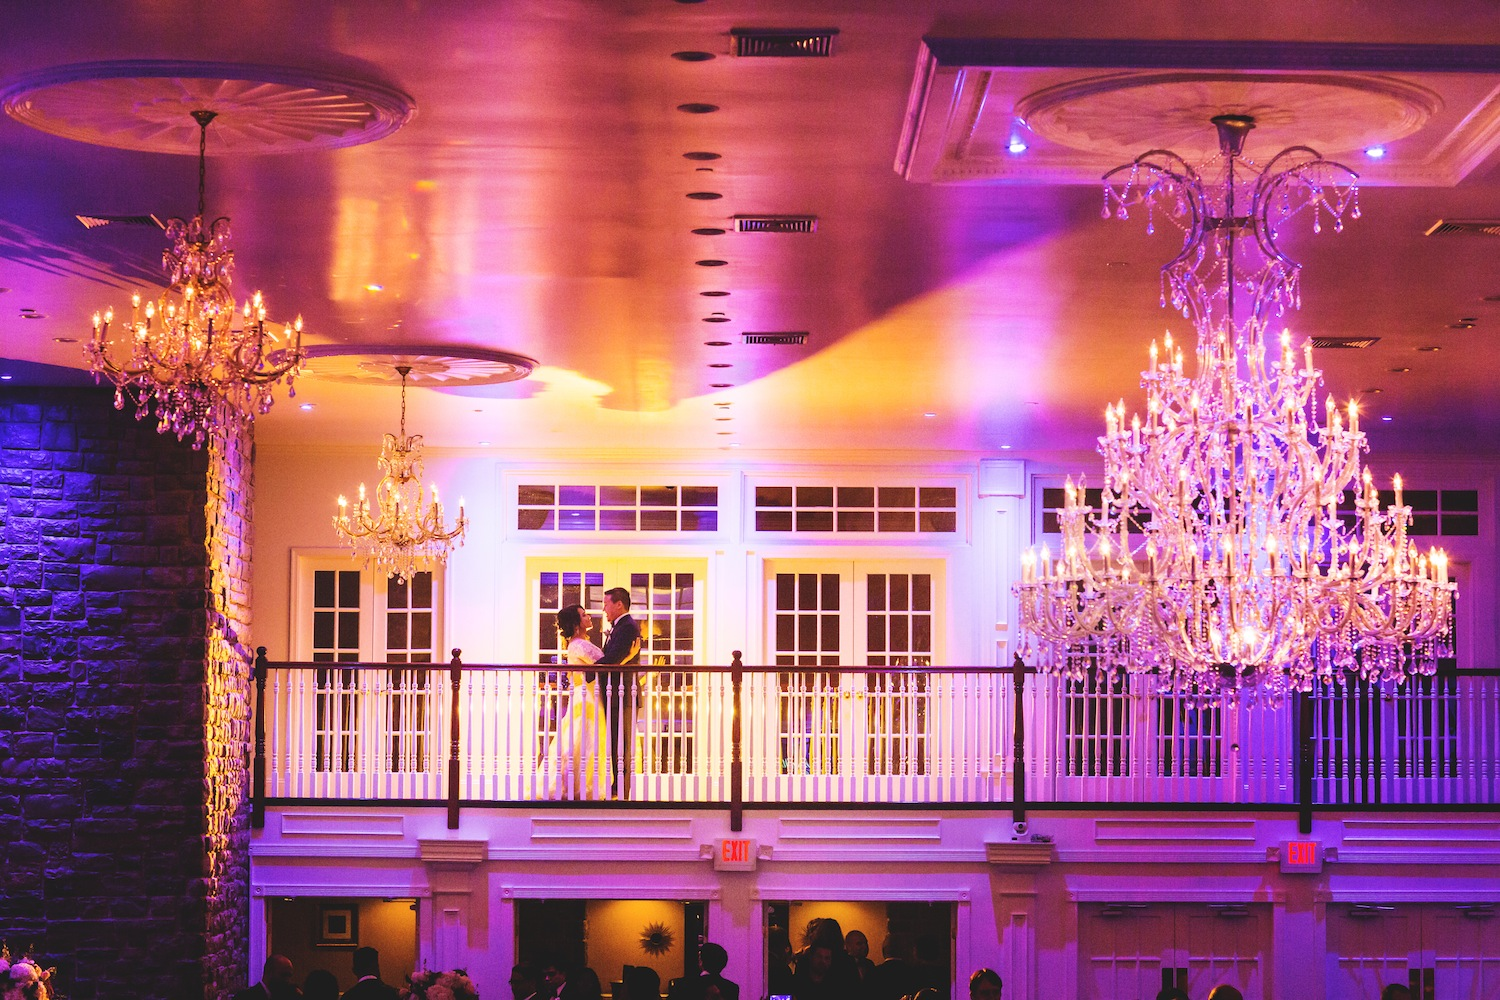 rob-and-kamana-embracing-on-balcony-in-colorful-venue-wedding-photography-nj